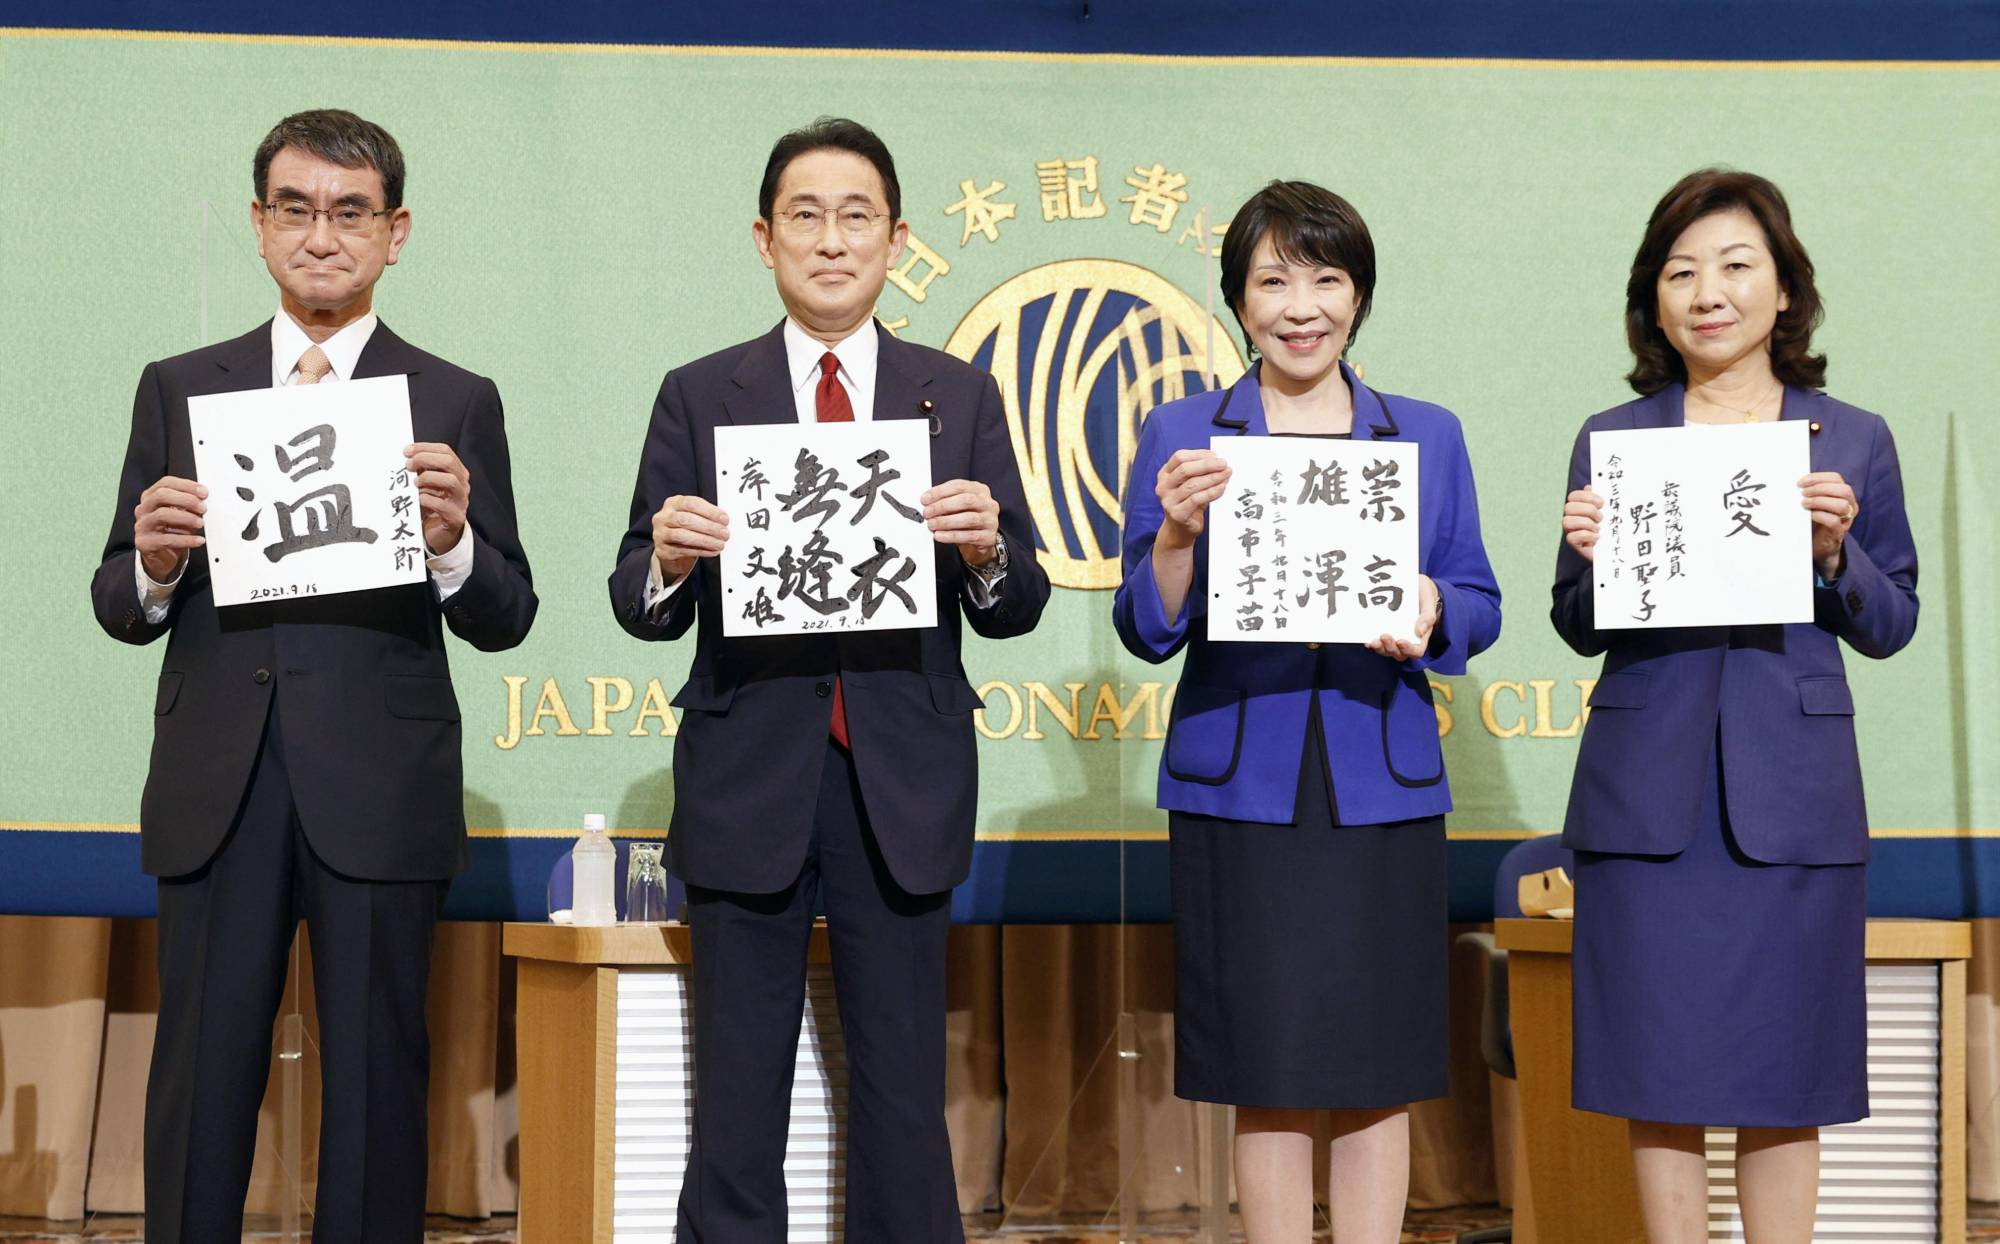 Vaccination minister Taro Kono (left to right), former Foreign Minister Fumio Kishida, former communications minister Sanae Takaichi and Seiko Noda, executive acting secretary-general of the LDP, pose at a party debate on Saturday. | KYODO